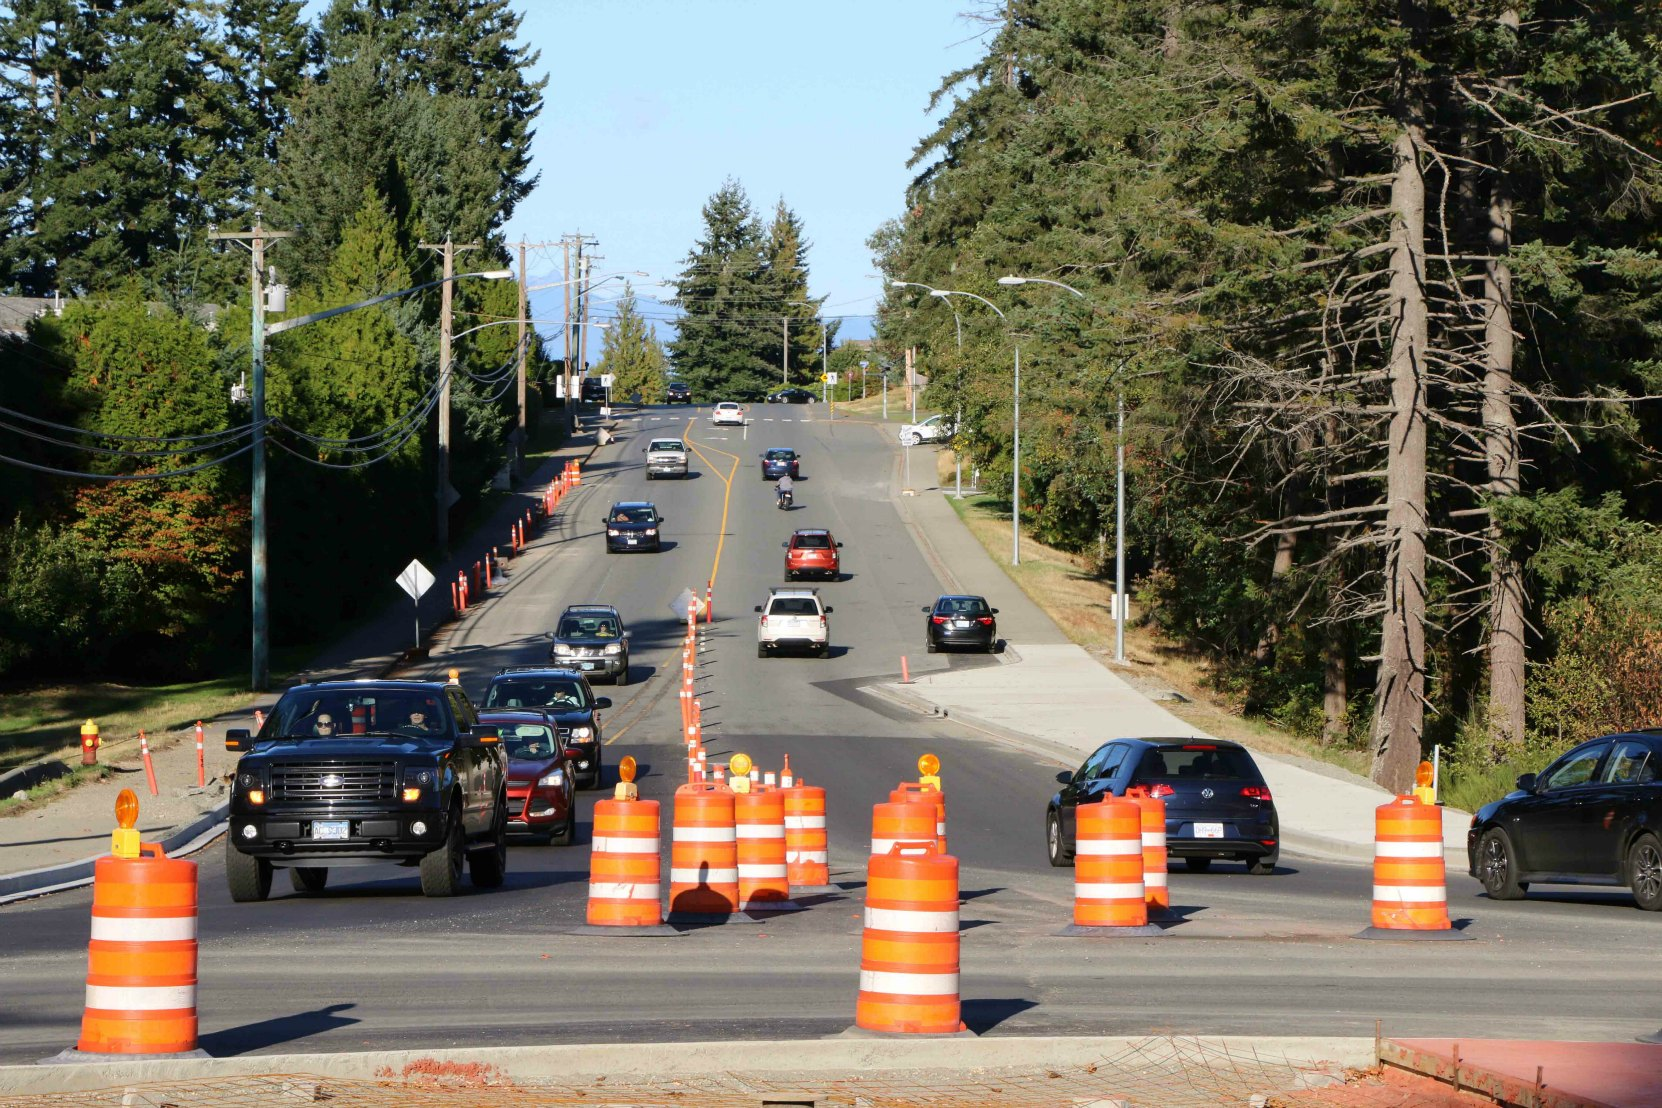 A typical roadway construction zone in British Columbia marked with Orange and Black signs, pylons and markers (photo by WestCoastDriverTraining.com)